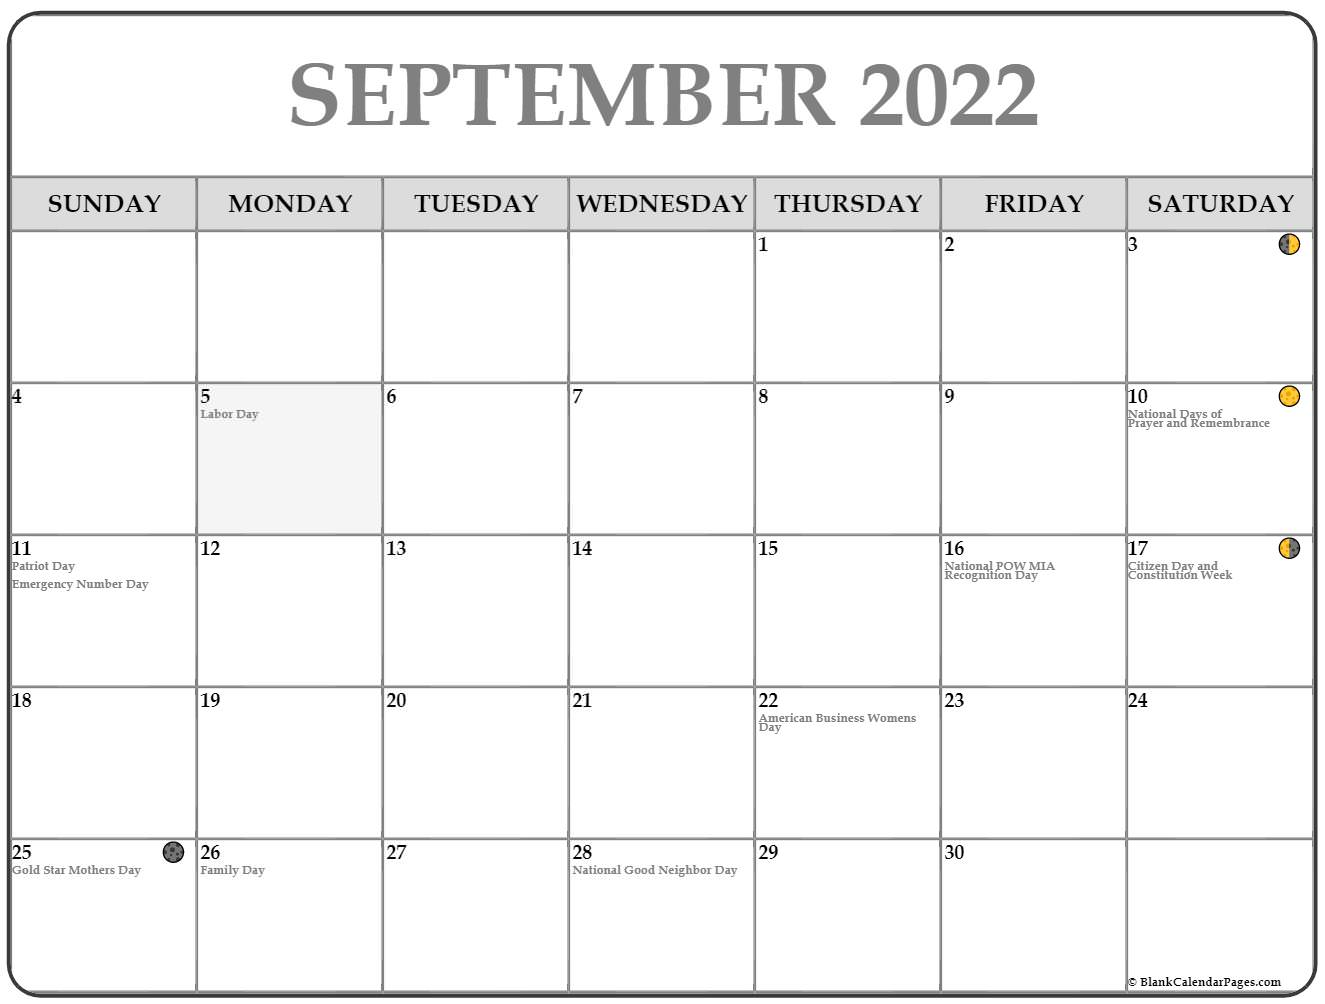 September 2022 Lunar Calendar | Moon Phase Calendar